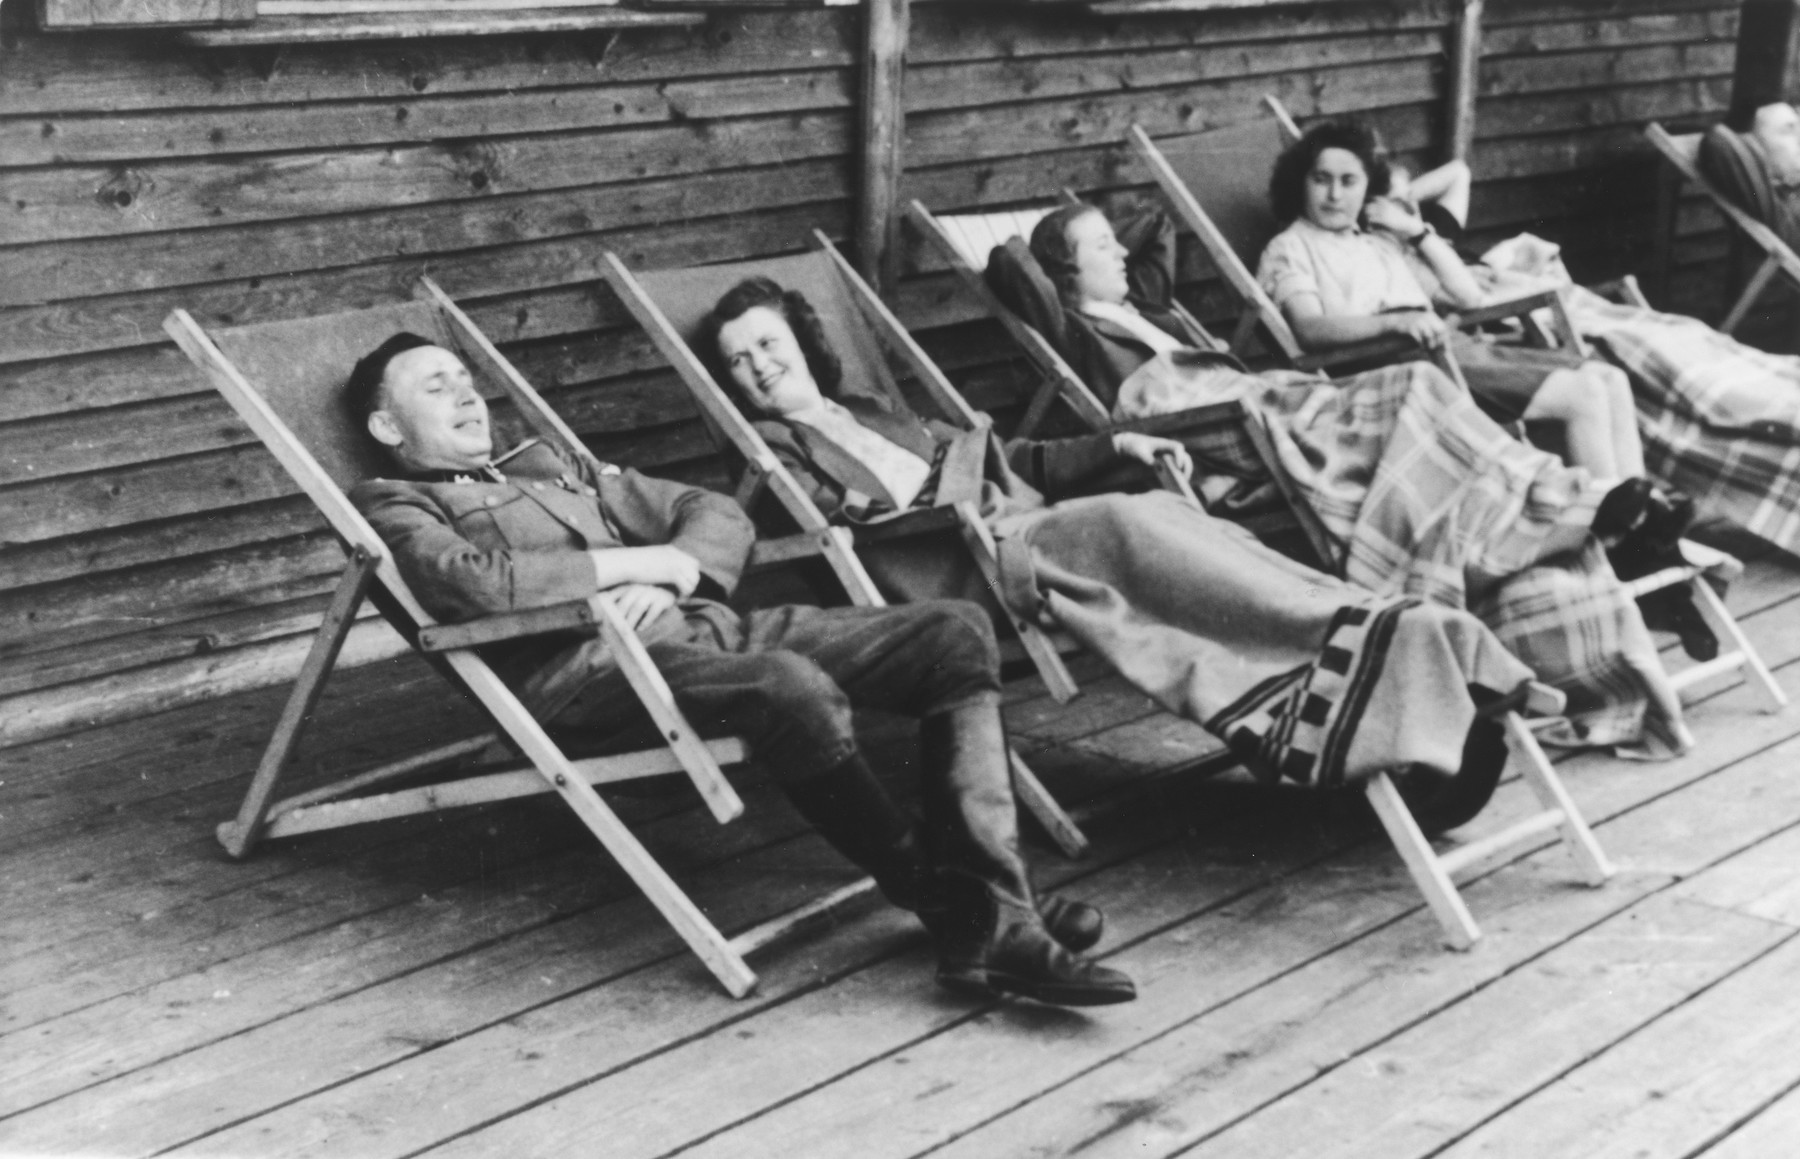 """SS officer Karl Hoecker relaxes with women in lounge chairs on the deck of the retreat in Solahuette.  The original caption reads """"On the terrace of the lodge""""."""